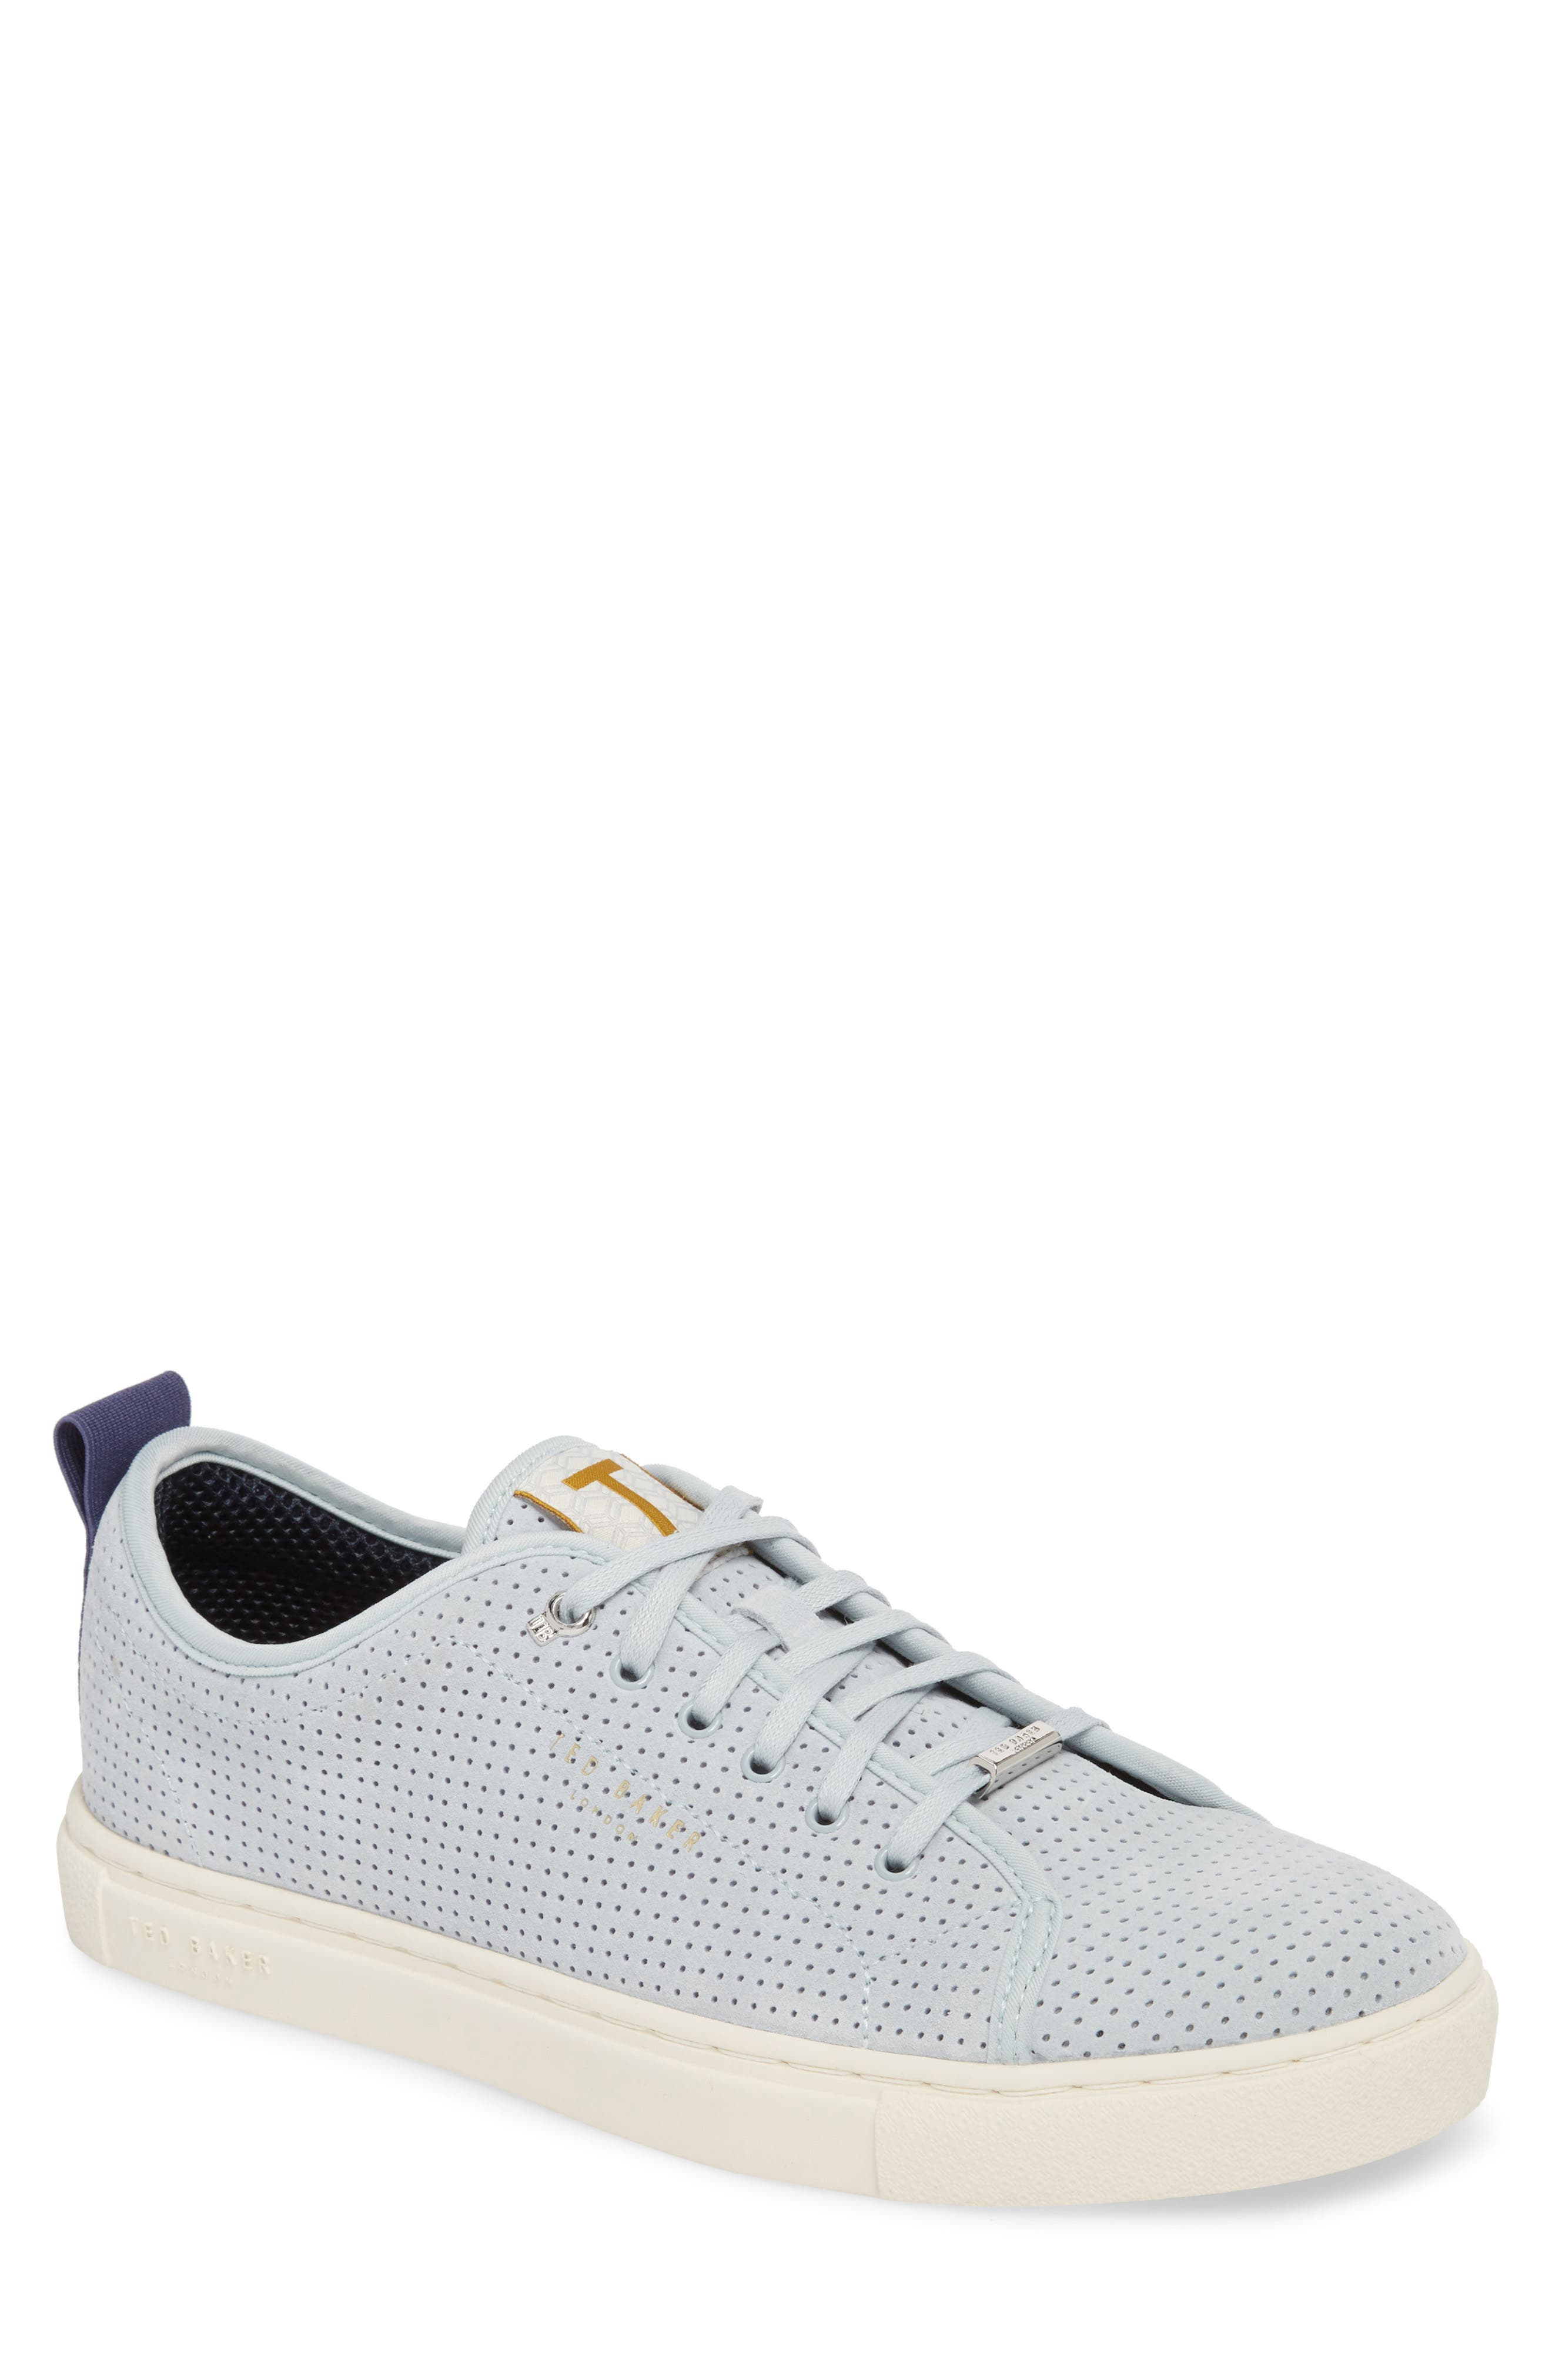 Kaliix Perforated Low Top Sneaker,                             Main thumbnail 1, color,                             LIGHT BLUE SUEDE